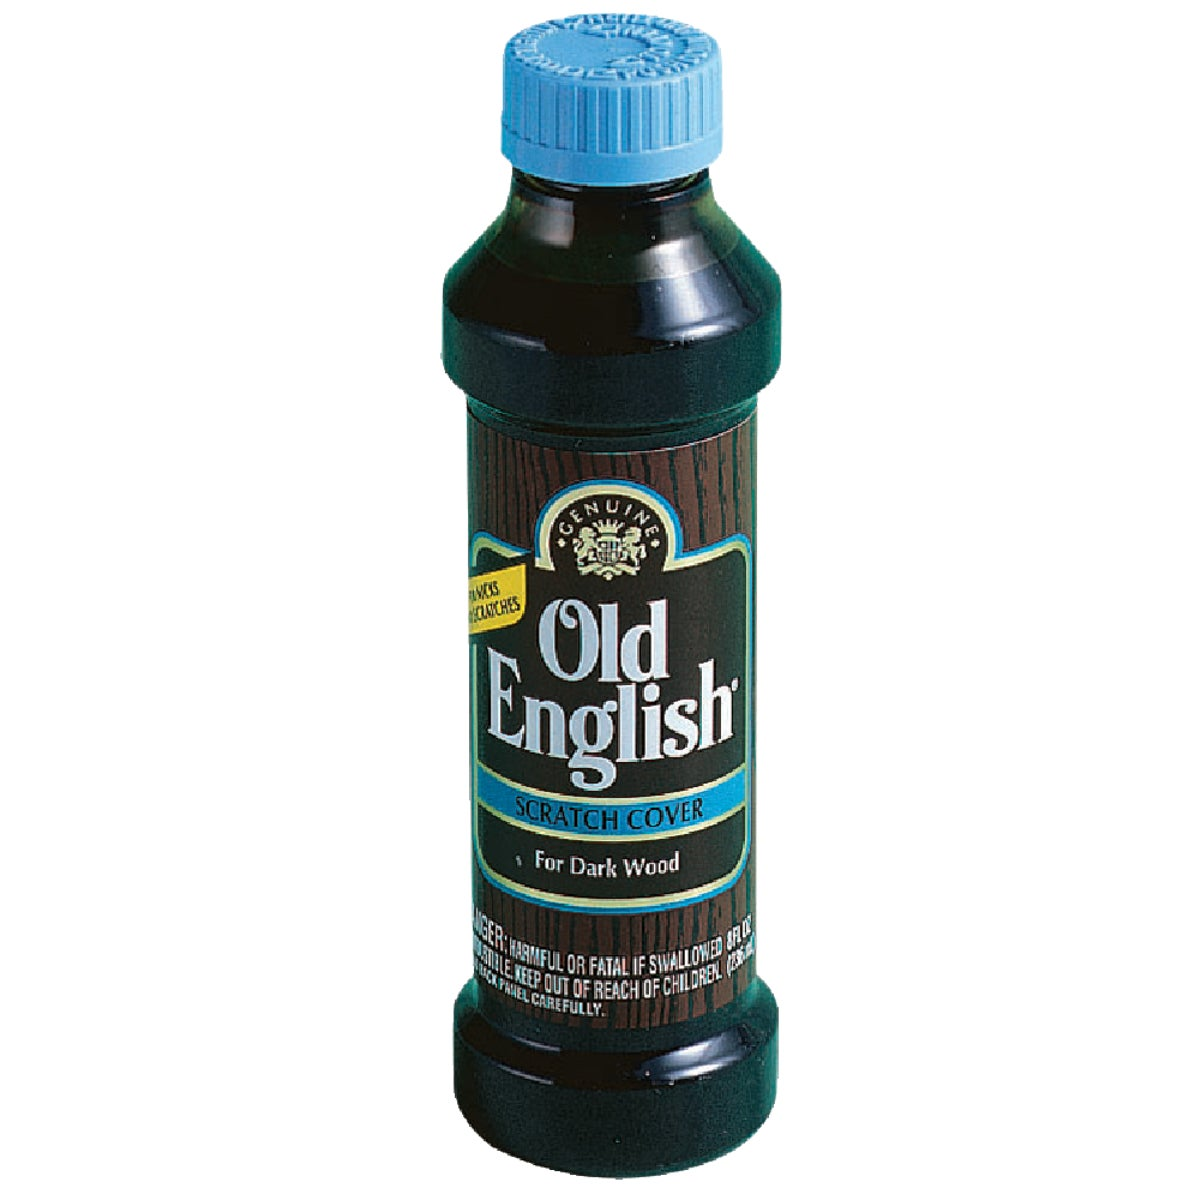 Old English Scratch Cover Wood Polish, 6233875144